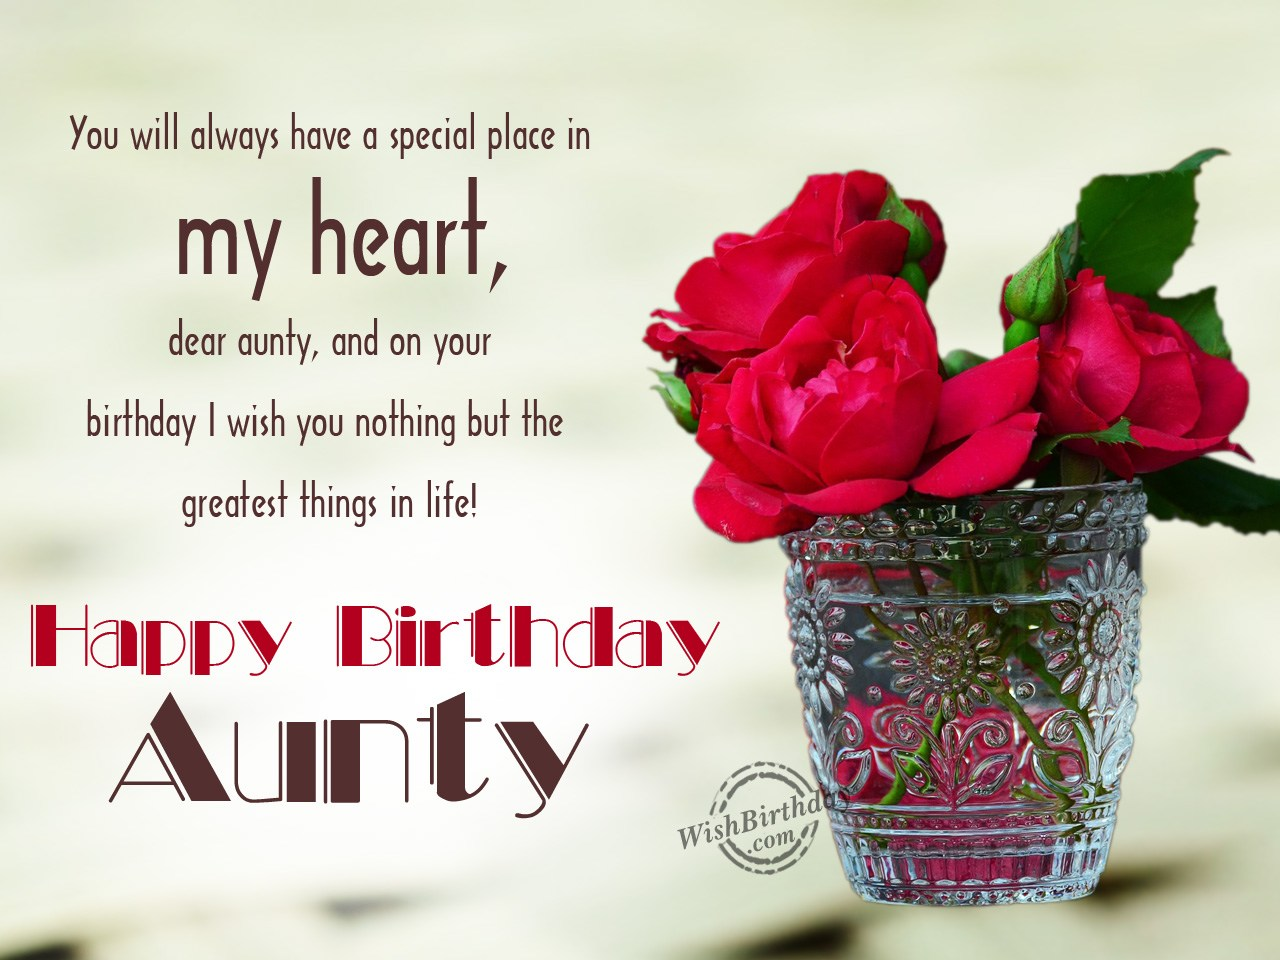 birthday message for aunt ; You-will-always-have-a-special-place-in-my-heart